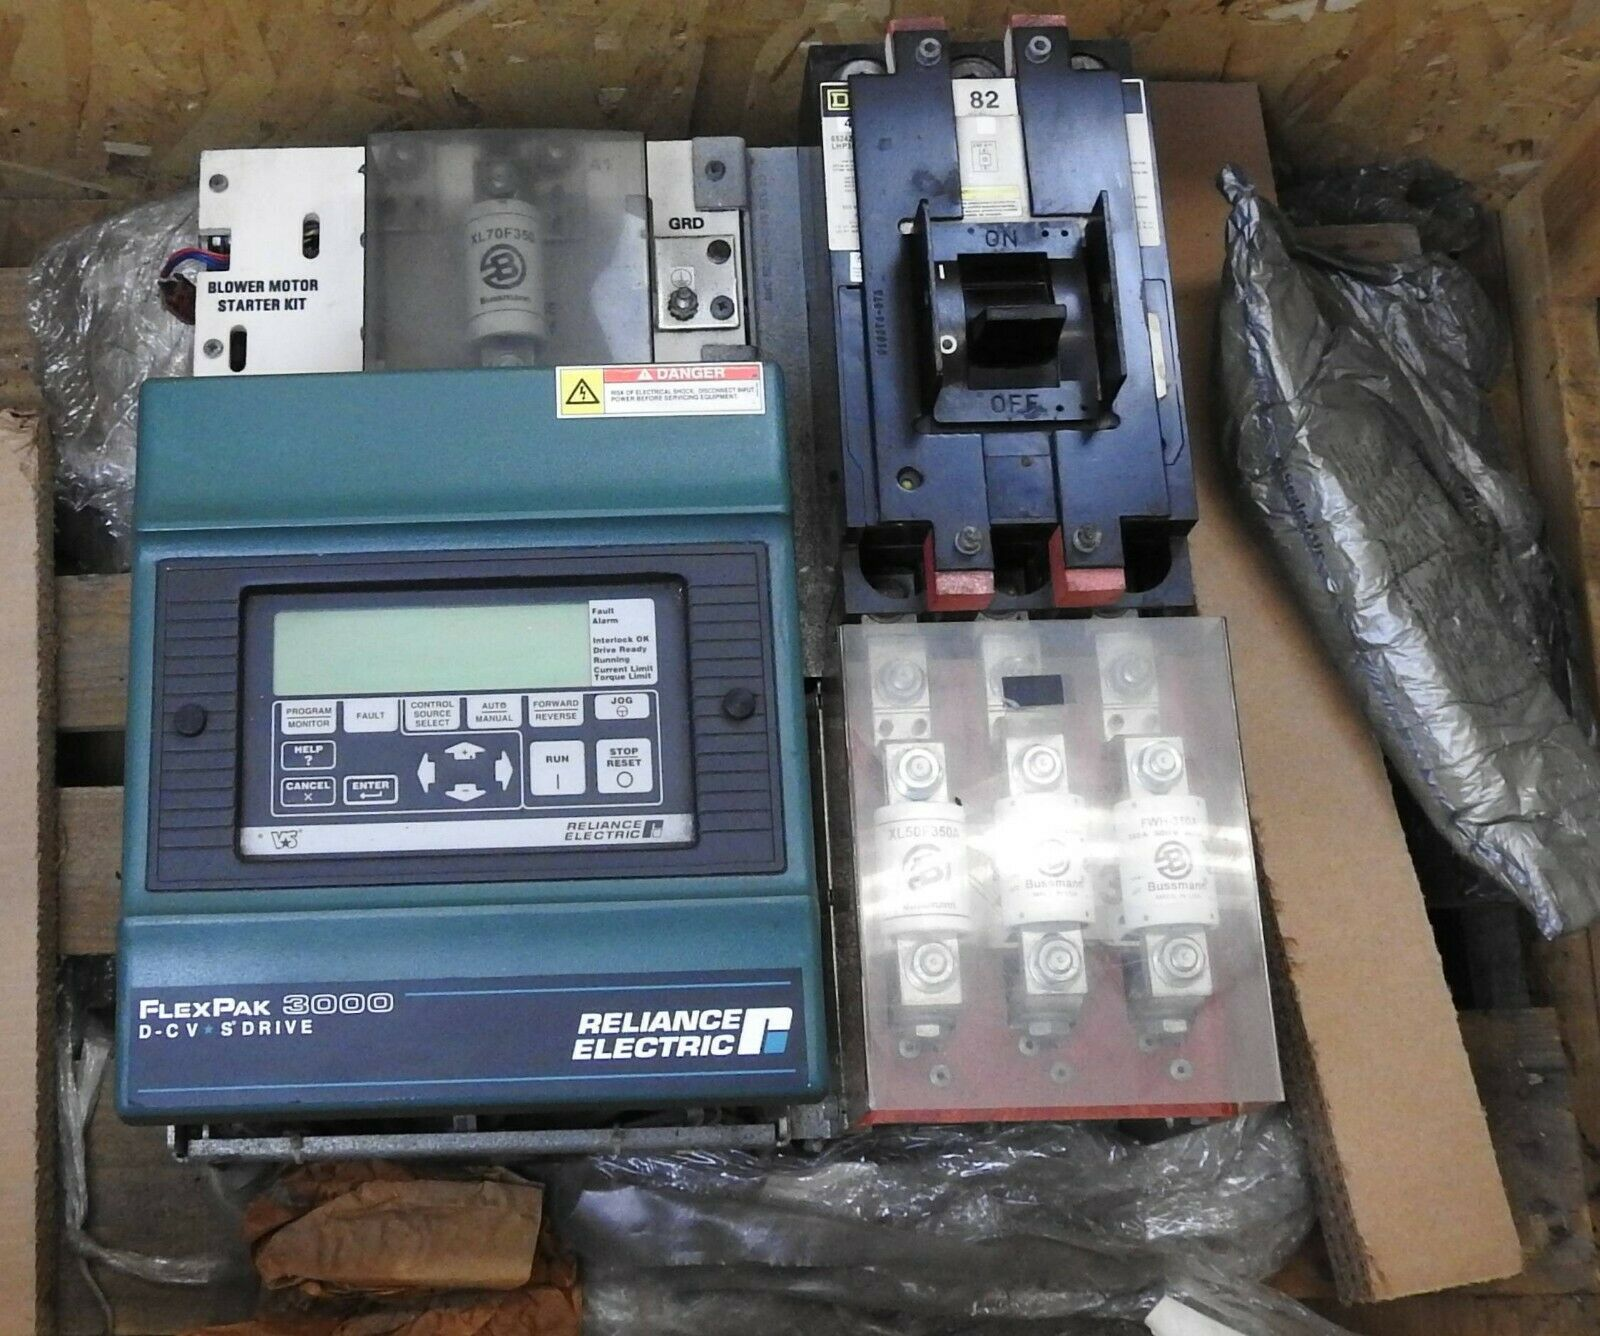 RELIANCE ELECTRIC FLEXPAK